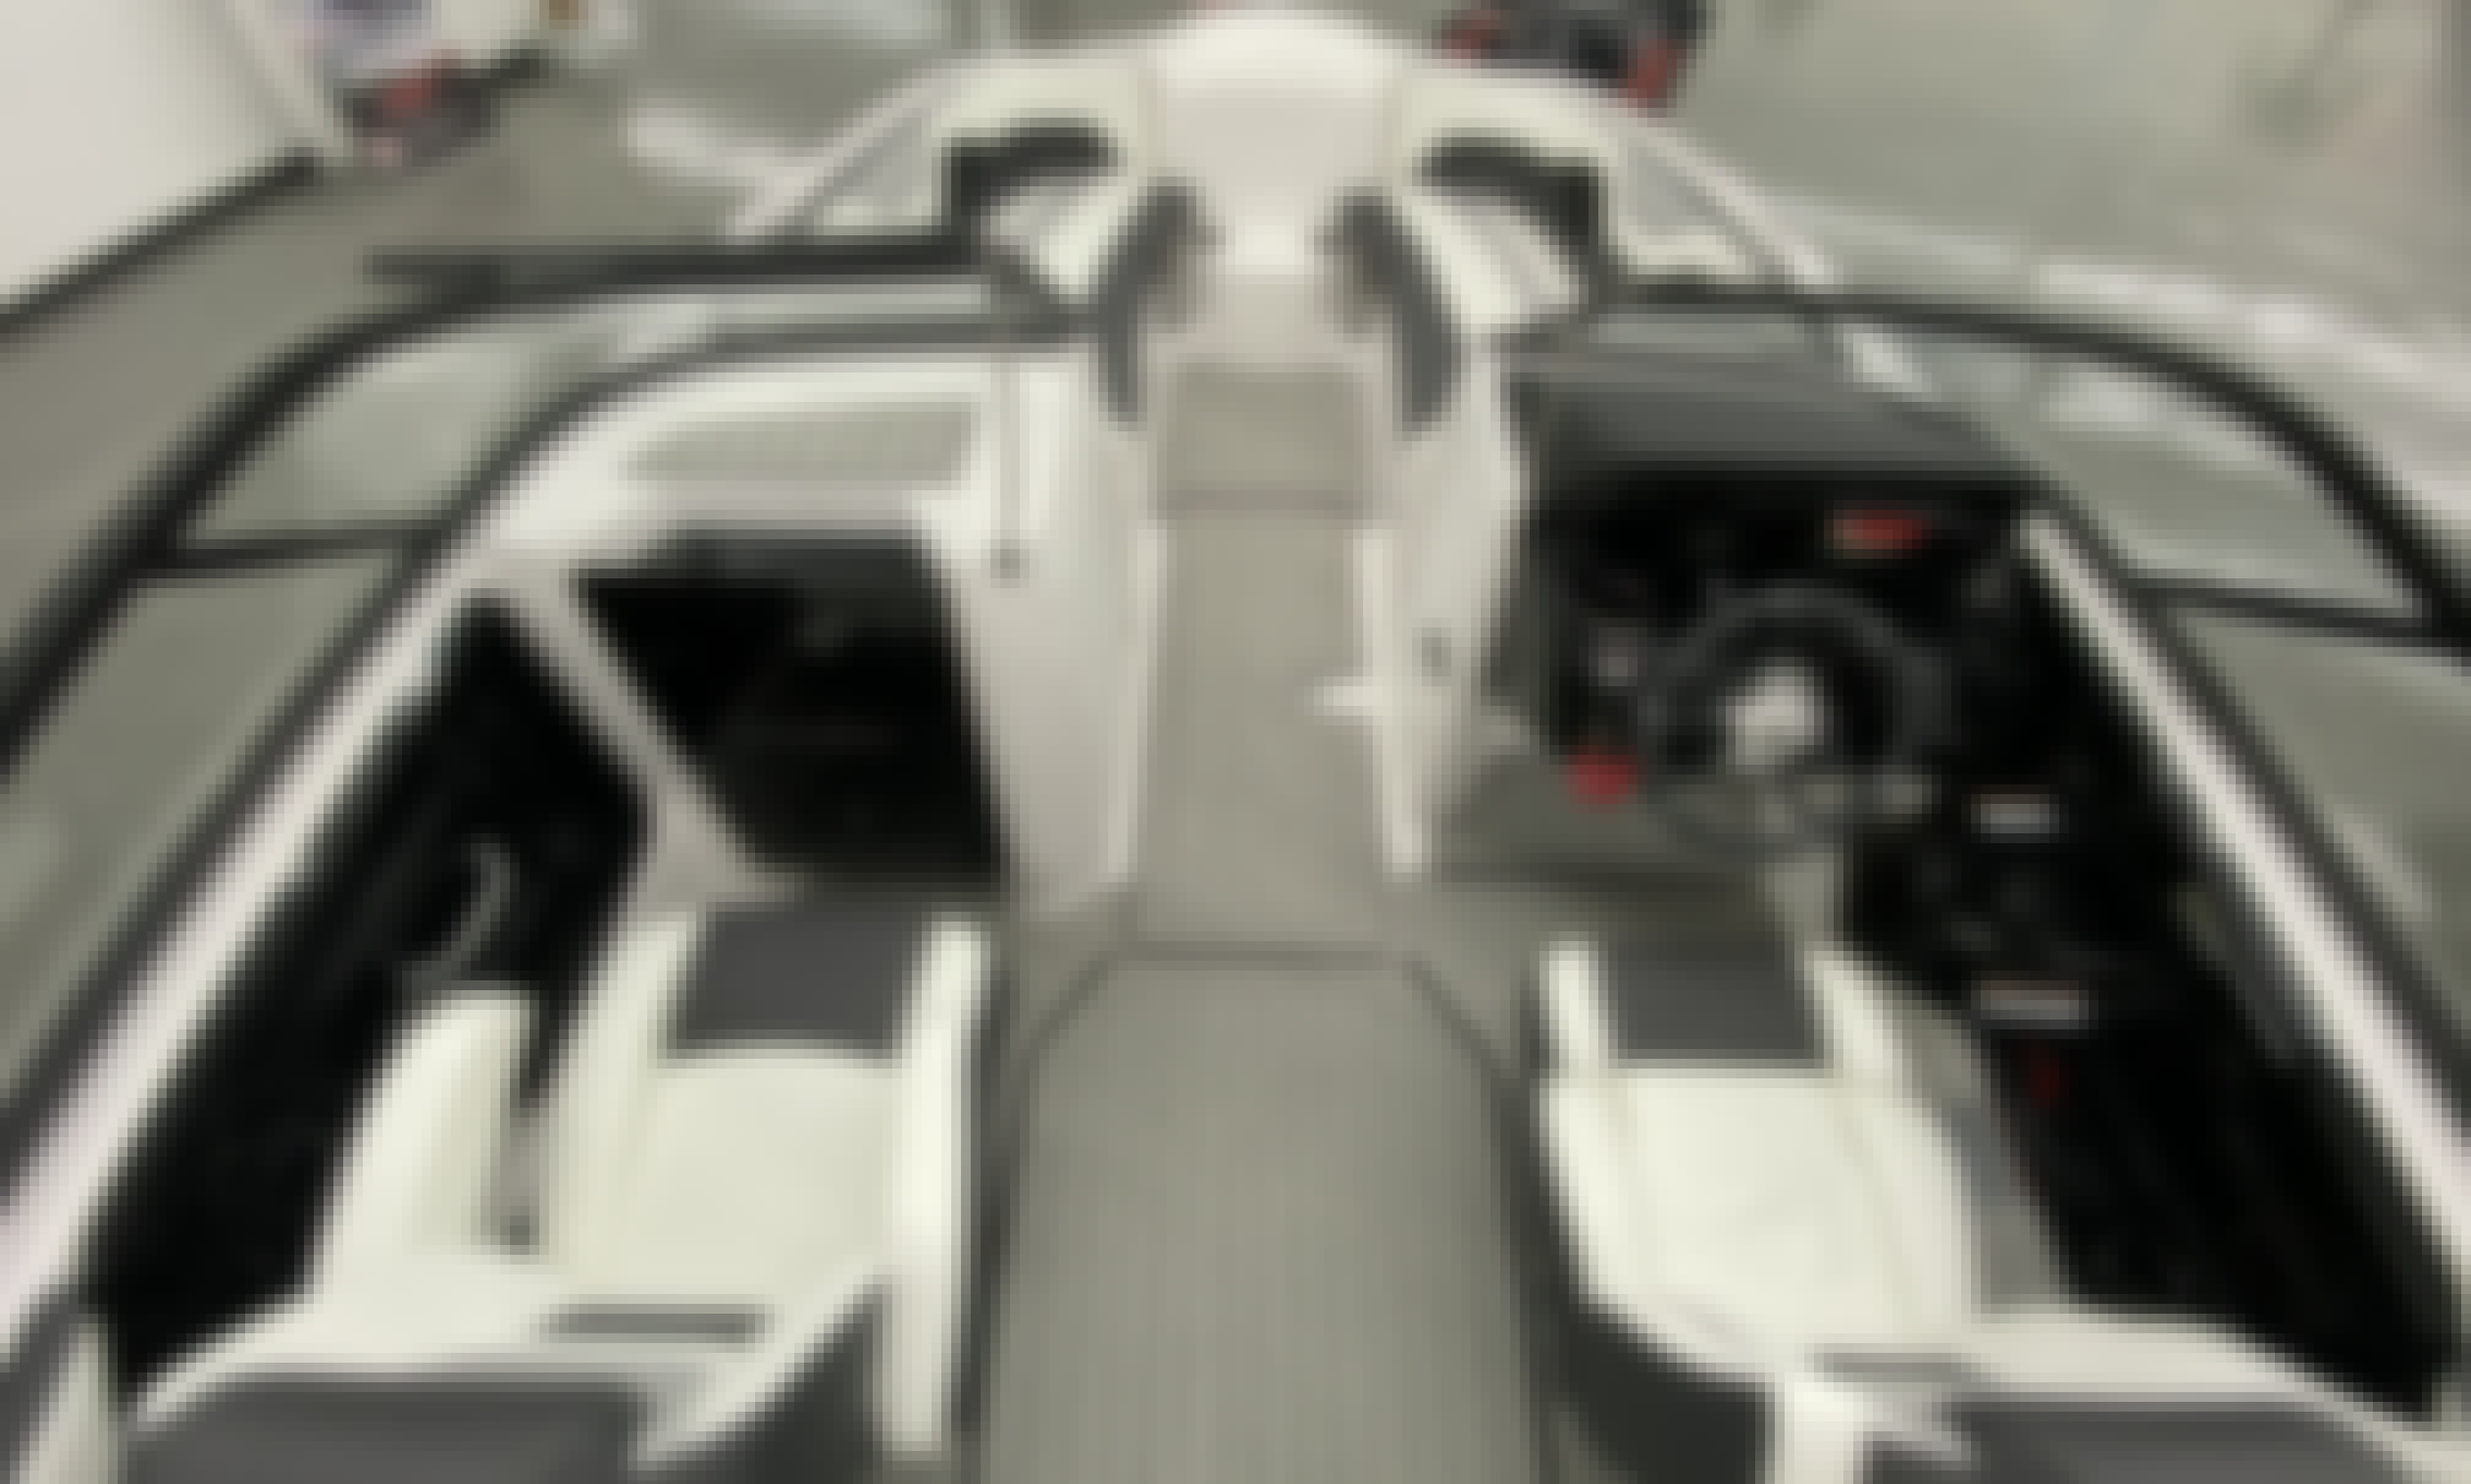 Cruise the lake in style on this 2021 Yamaha 212S Power Boat!!!